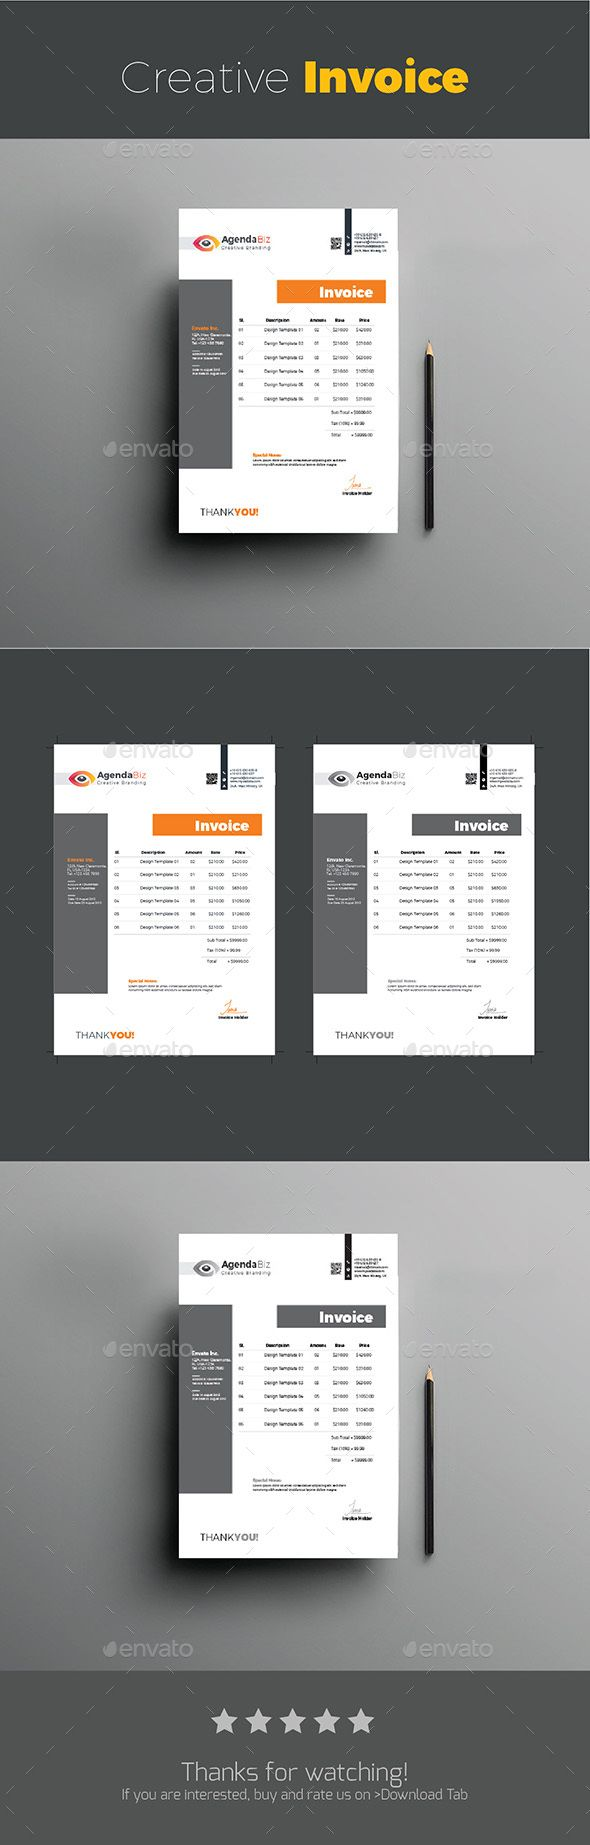 proposal report template%0A Creative Invoice  Proposals  u      Invoices  Stationery